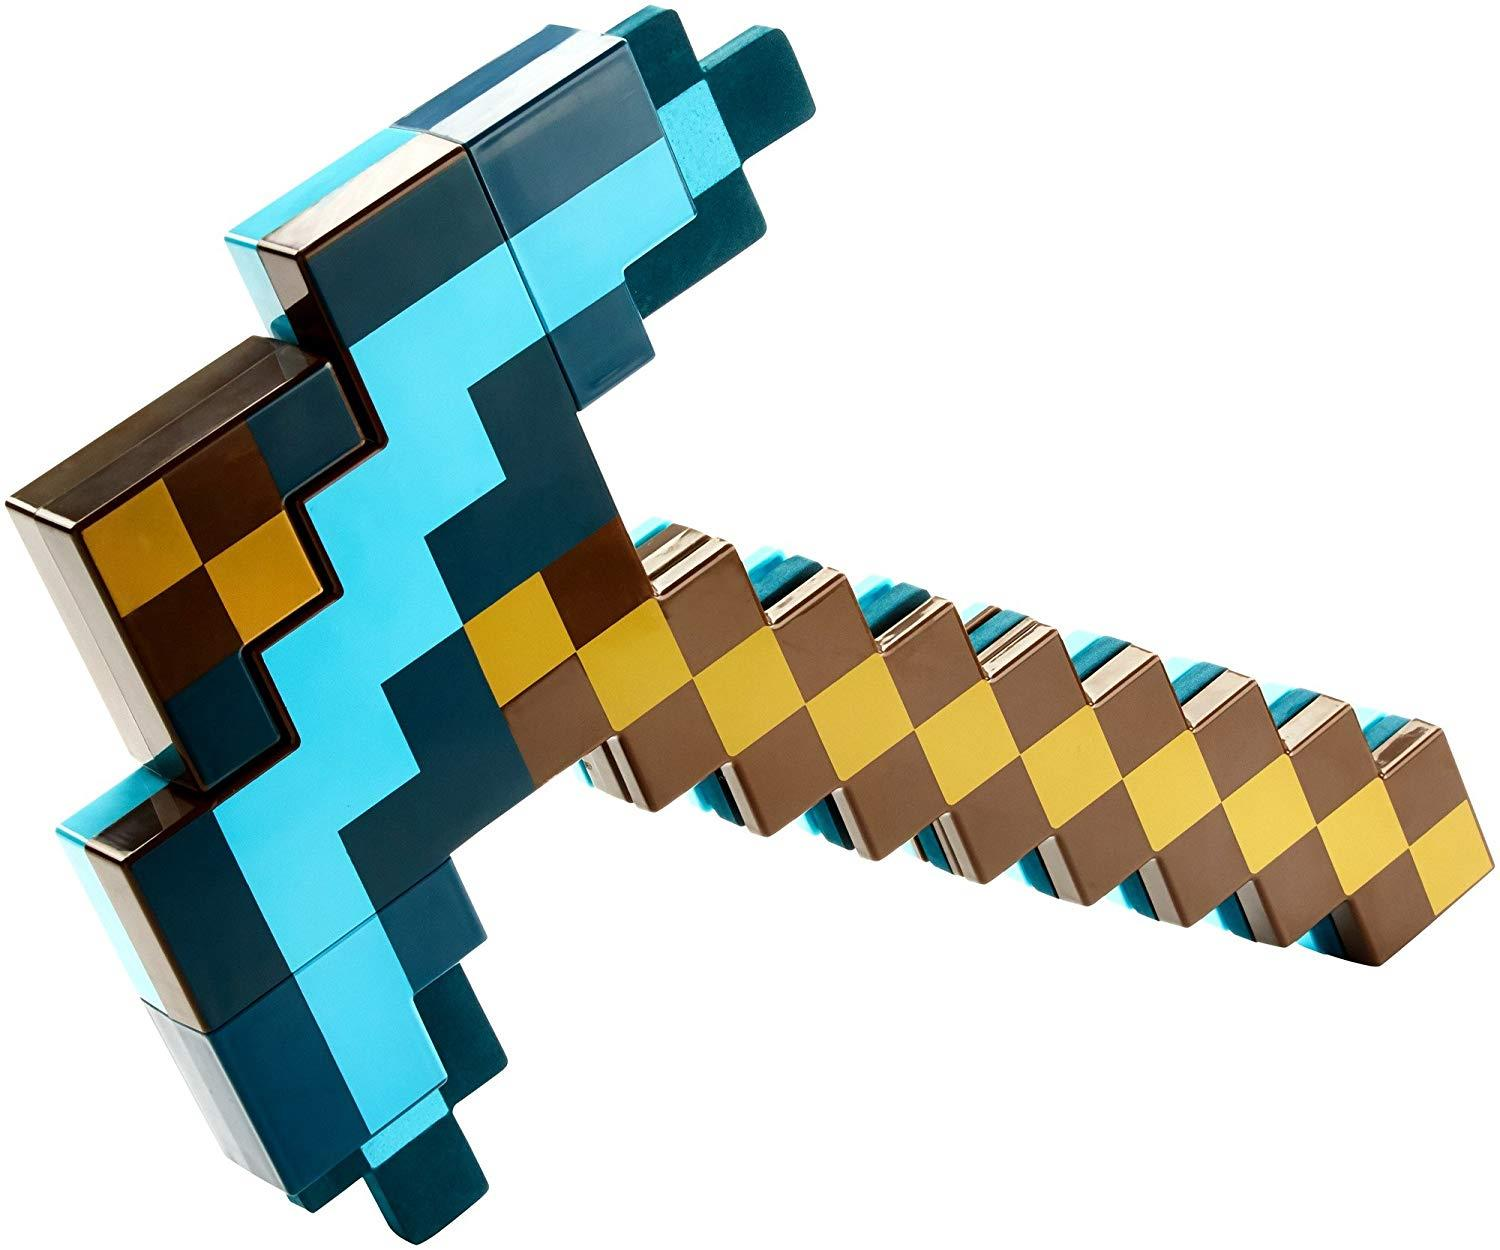 Details about Minecraft Transforming Sword Pickaxe Blue/Green